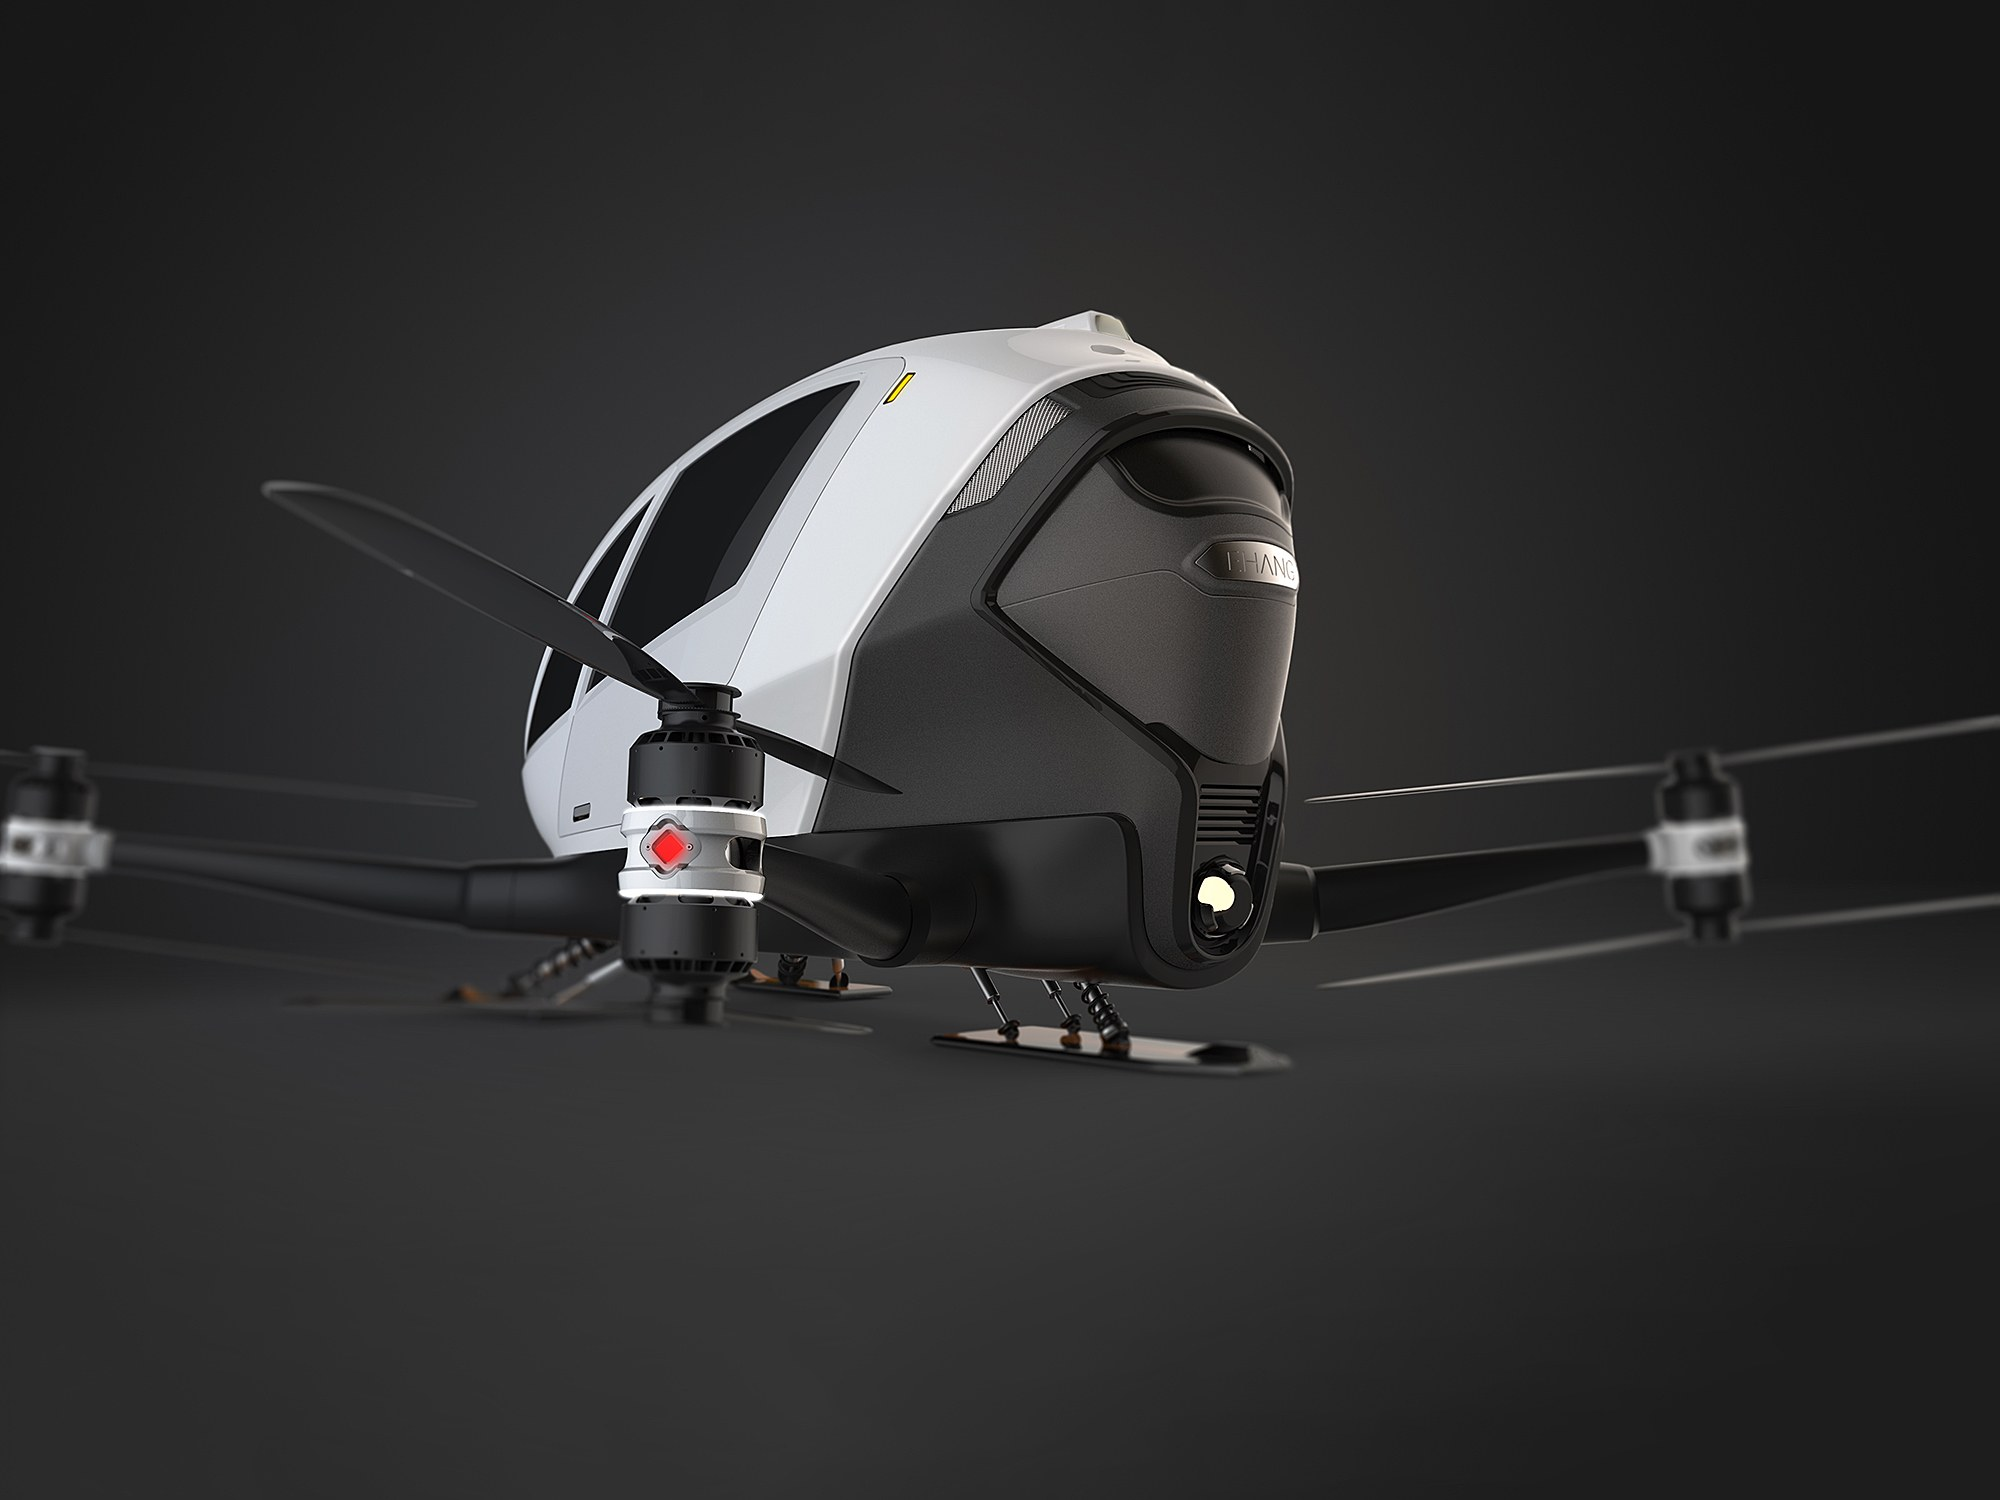 That Crazy People-Carrying Drone Is About to Start Testing   WIRED